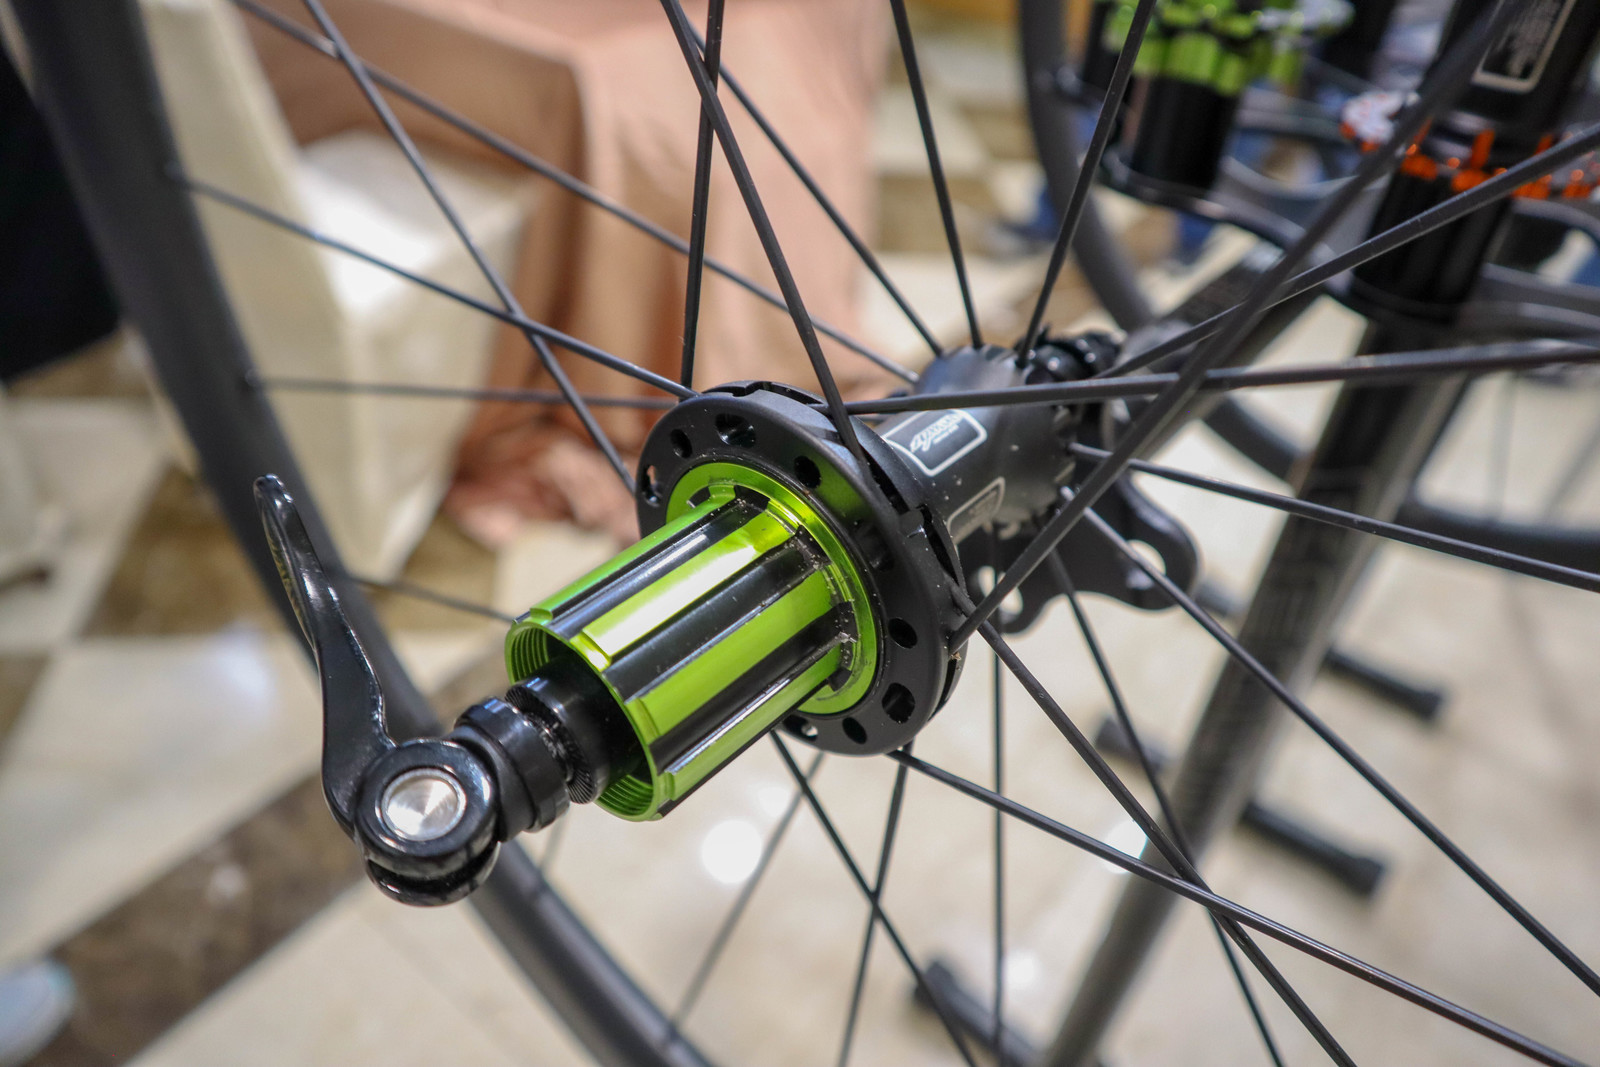 Amoeba's Silent Hub with Instant Engagement - Crazy Bike Tech from Taichung Bike Week - Mountain Biking Pictures - Vital MTB